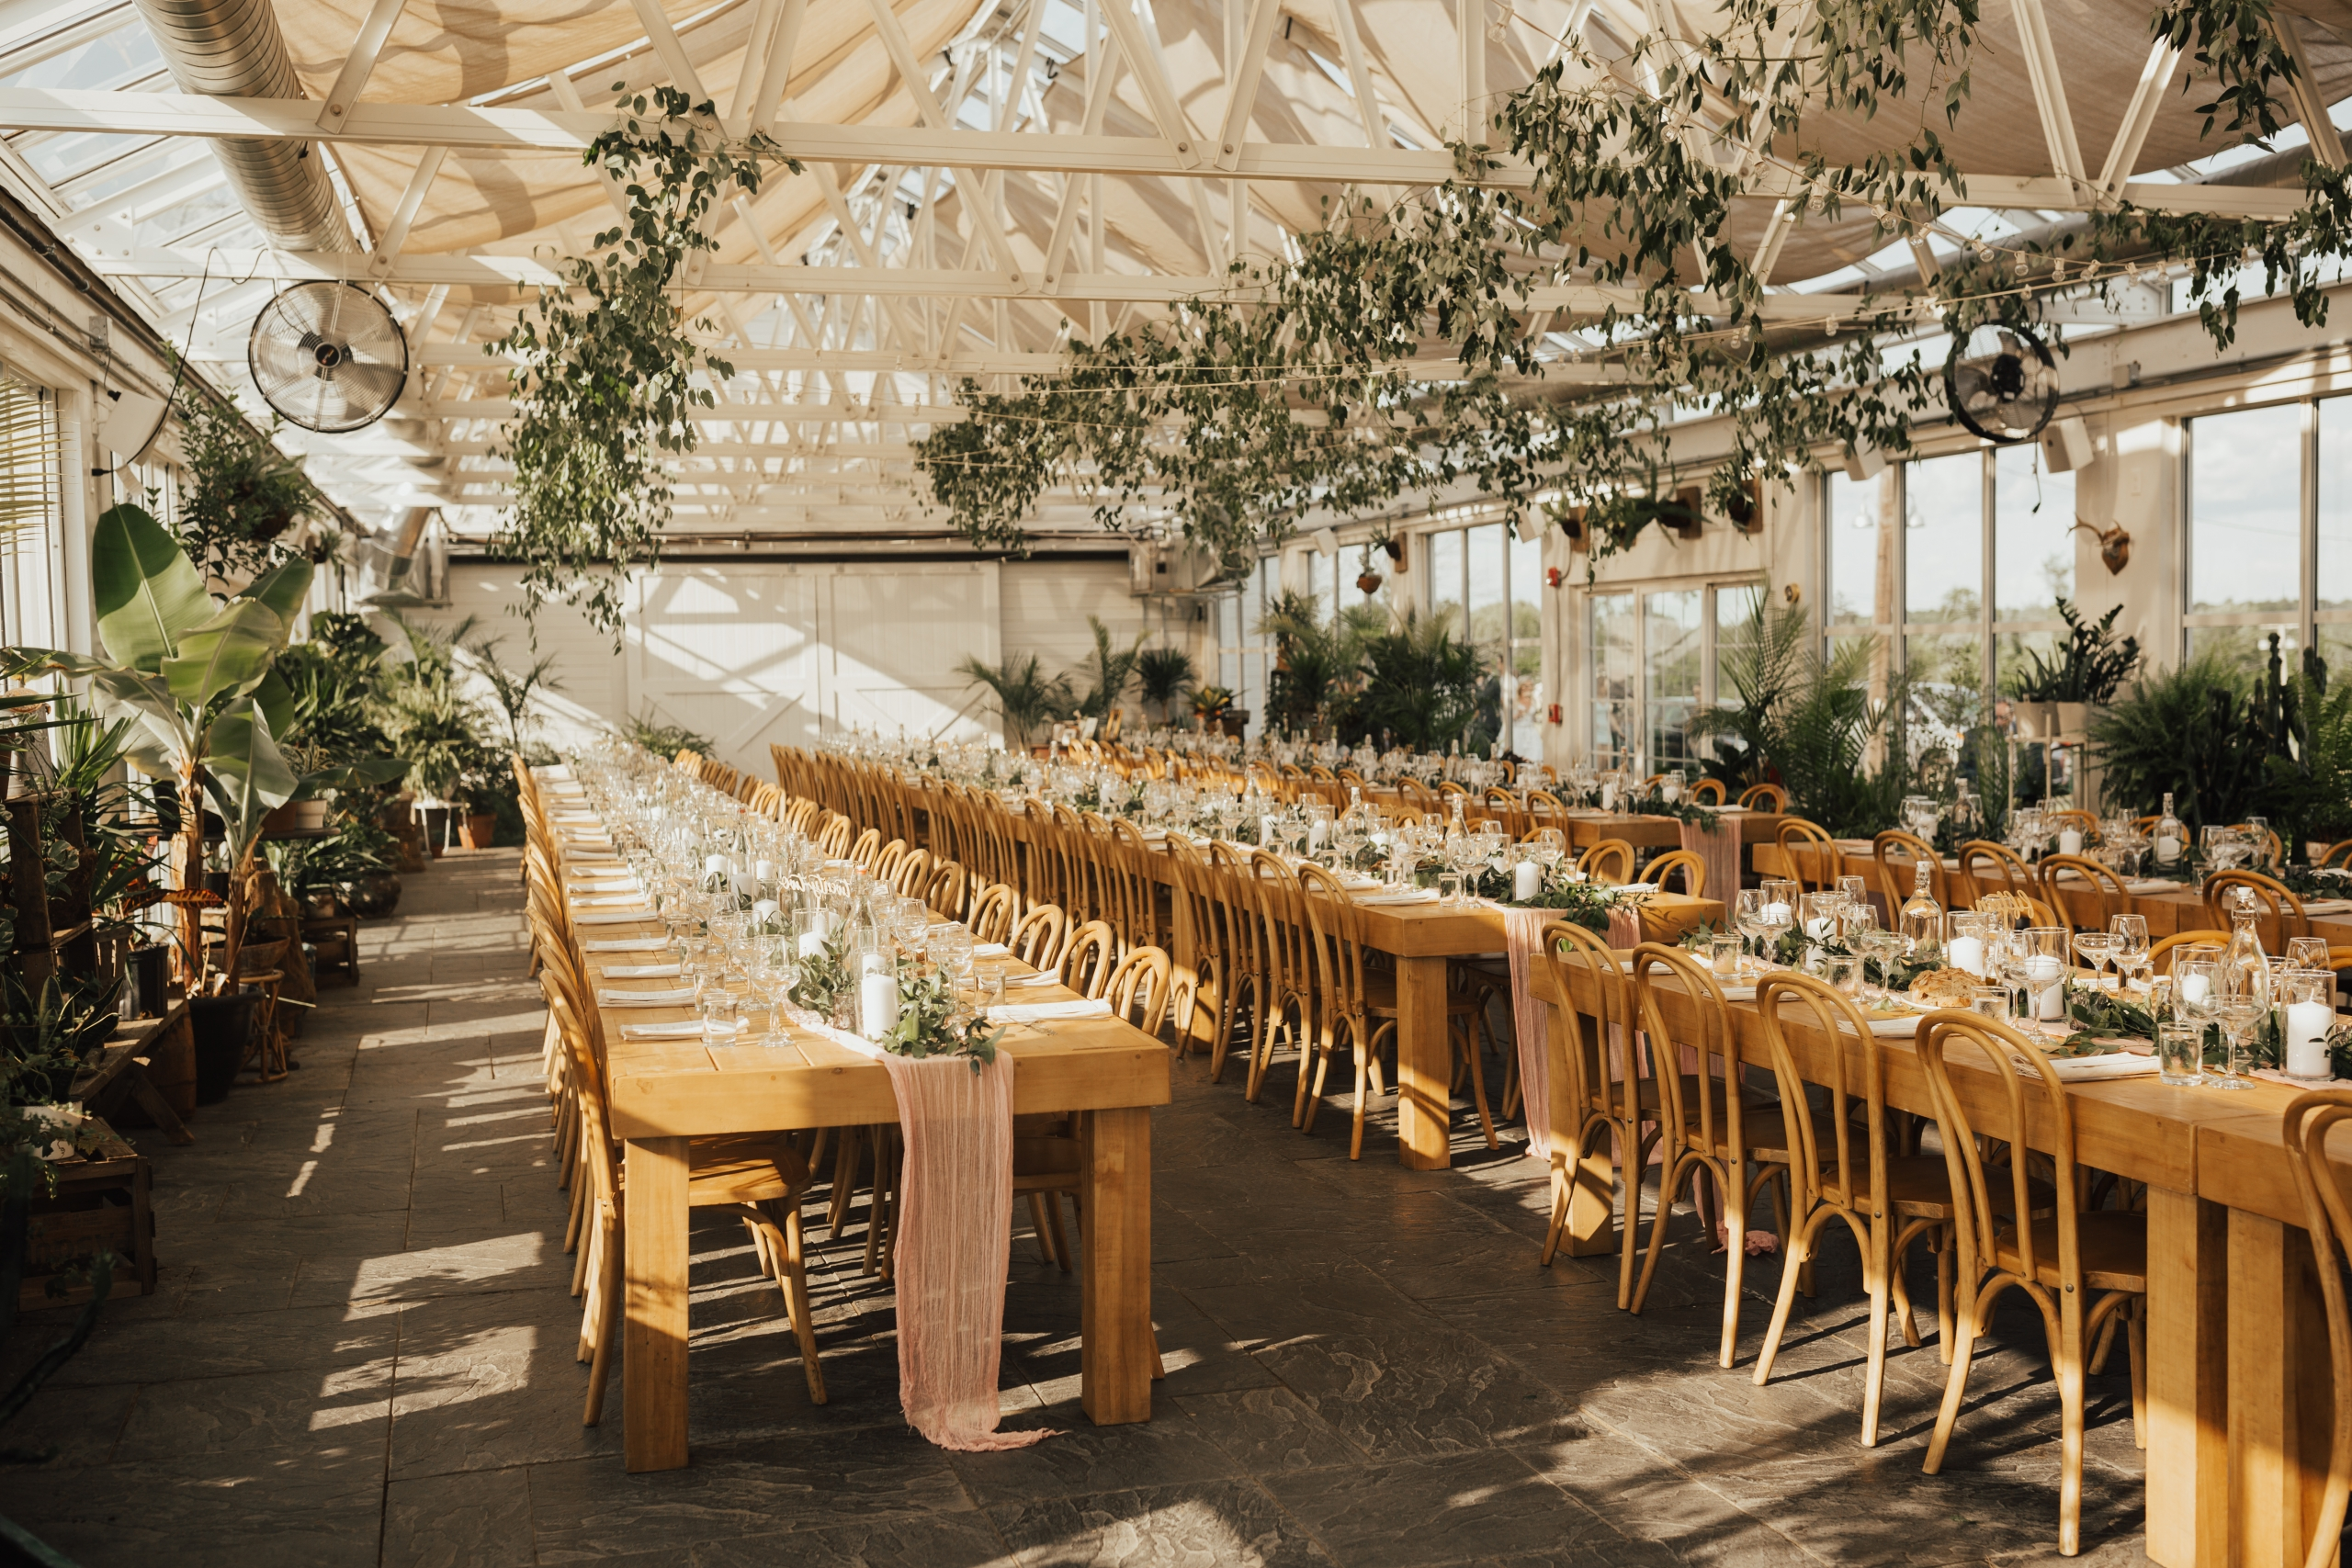 greenhouse wedding at Audrey's farmhouse - Hudson valley